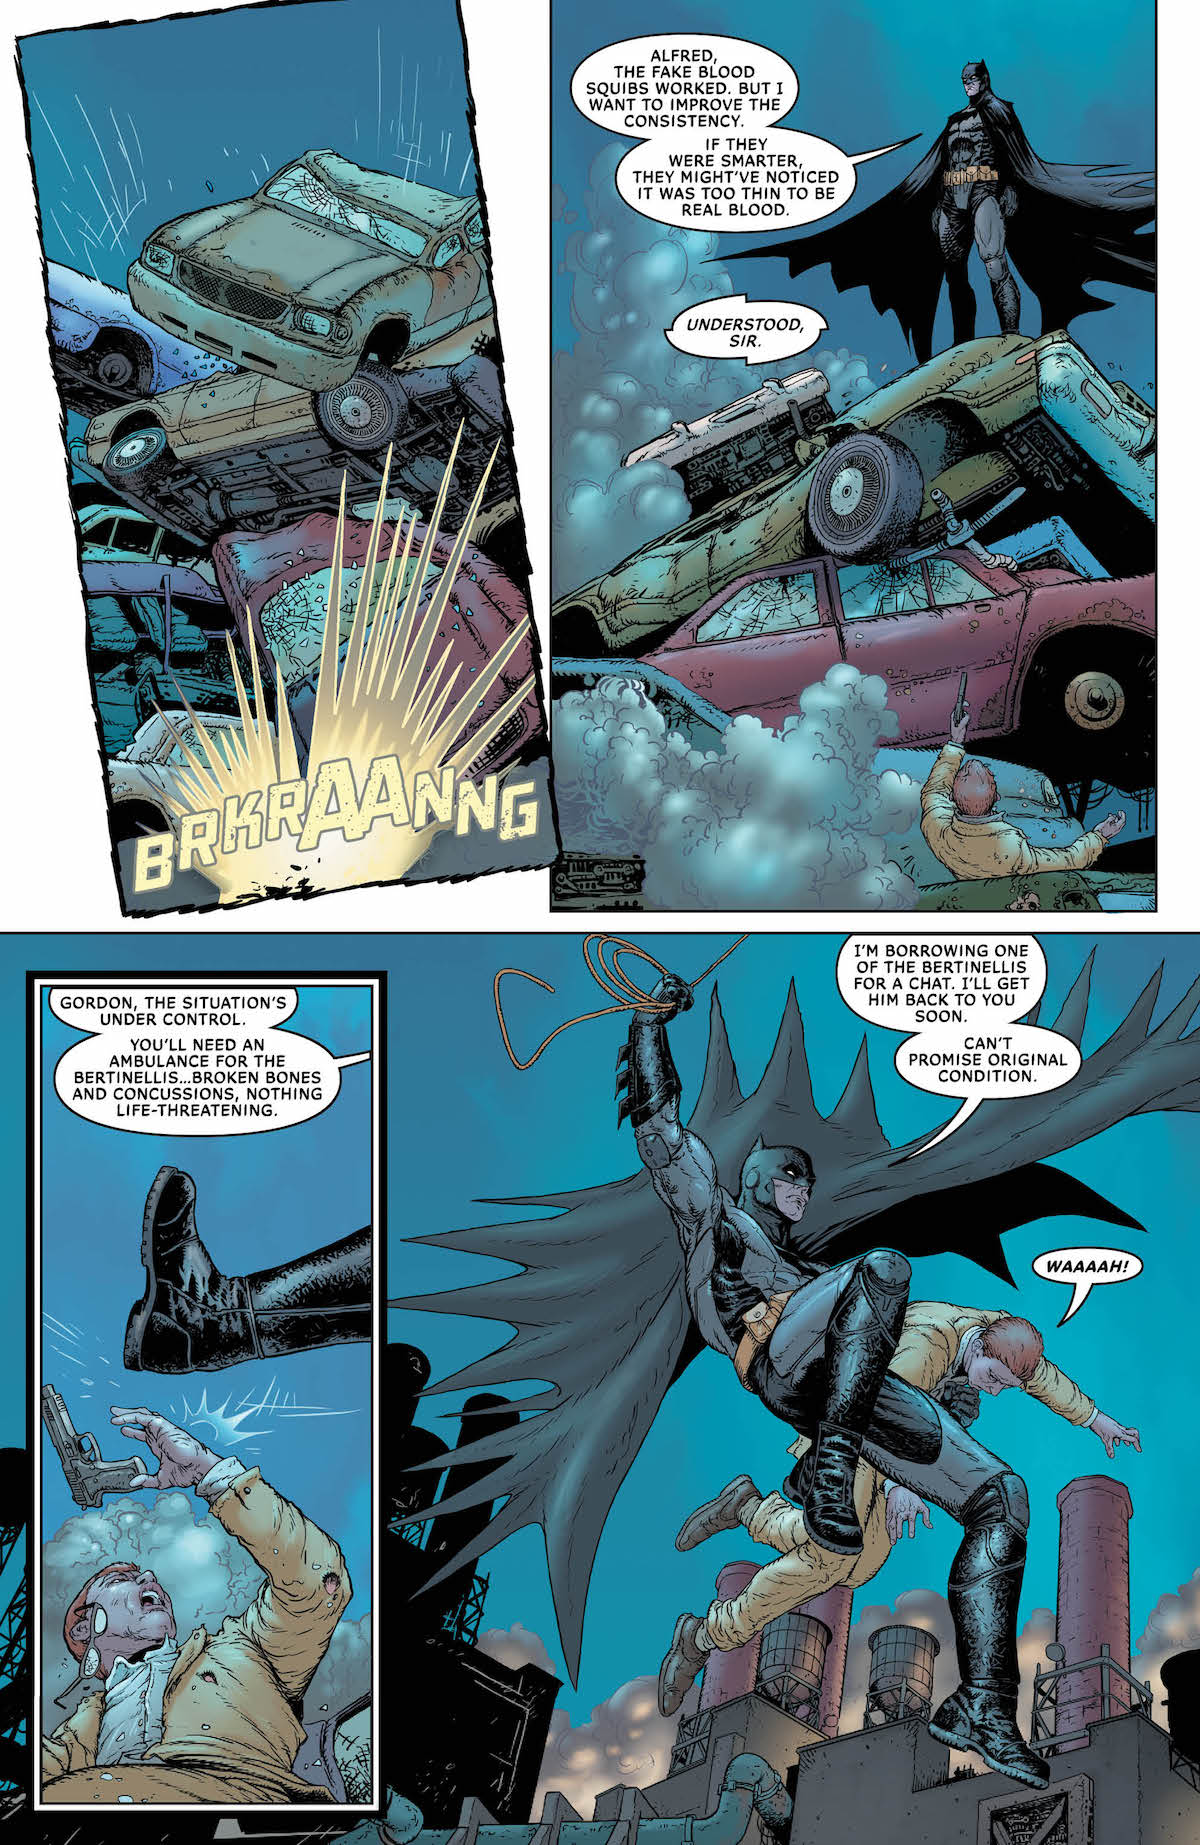 Batman: Sins of the Father #1 page 5